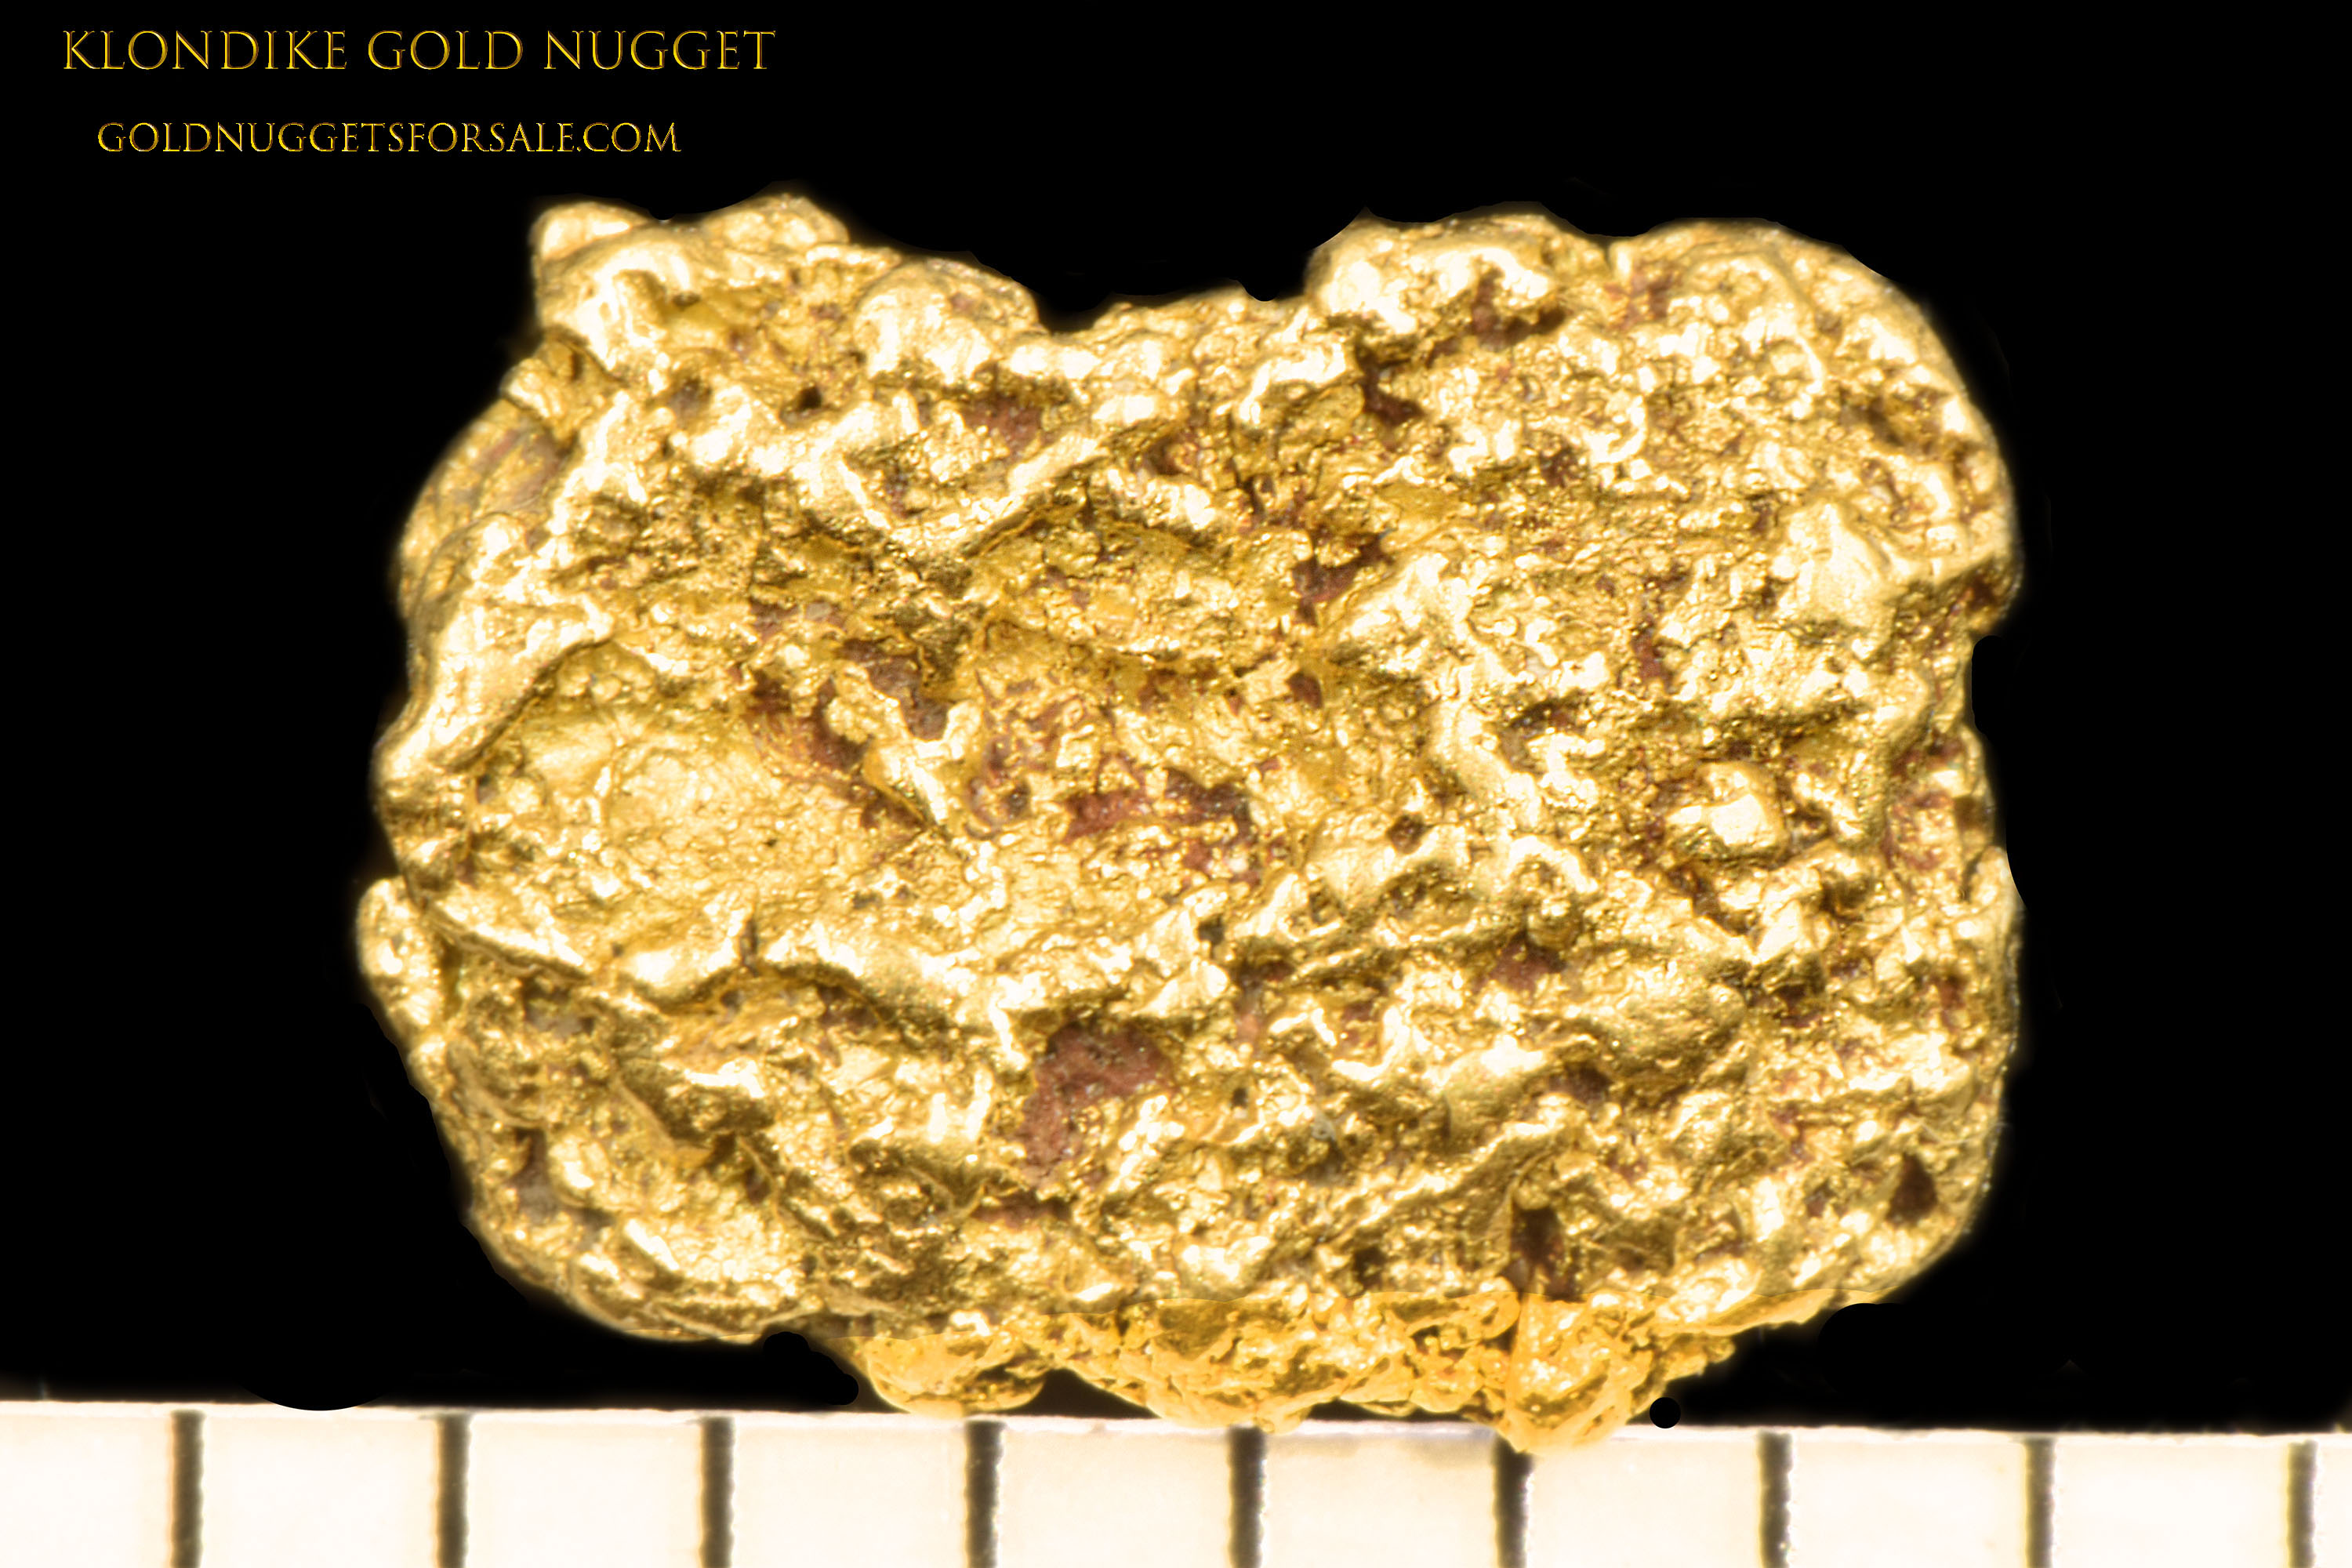 Detailed and Marvelous - Jewelry Grade Klondike Gold Nugget